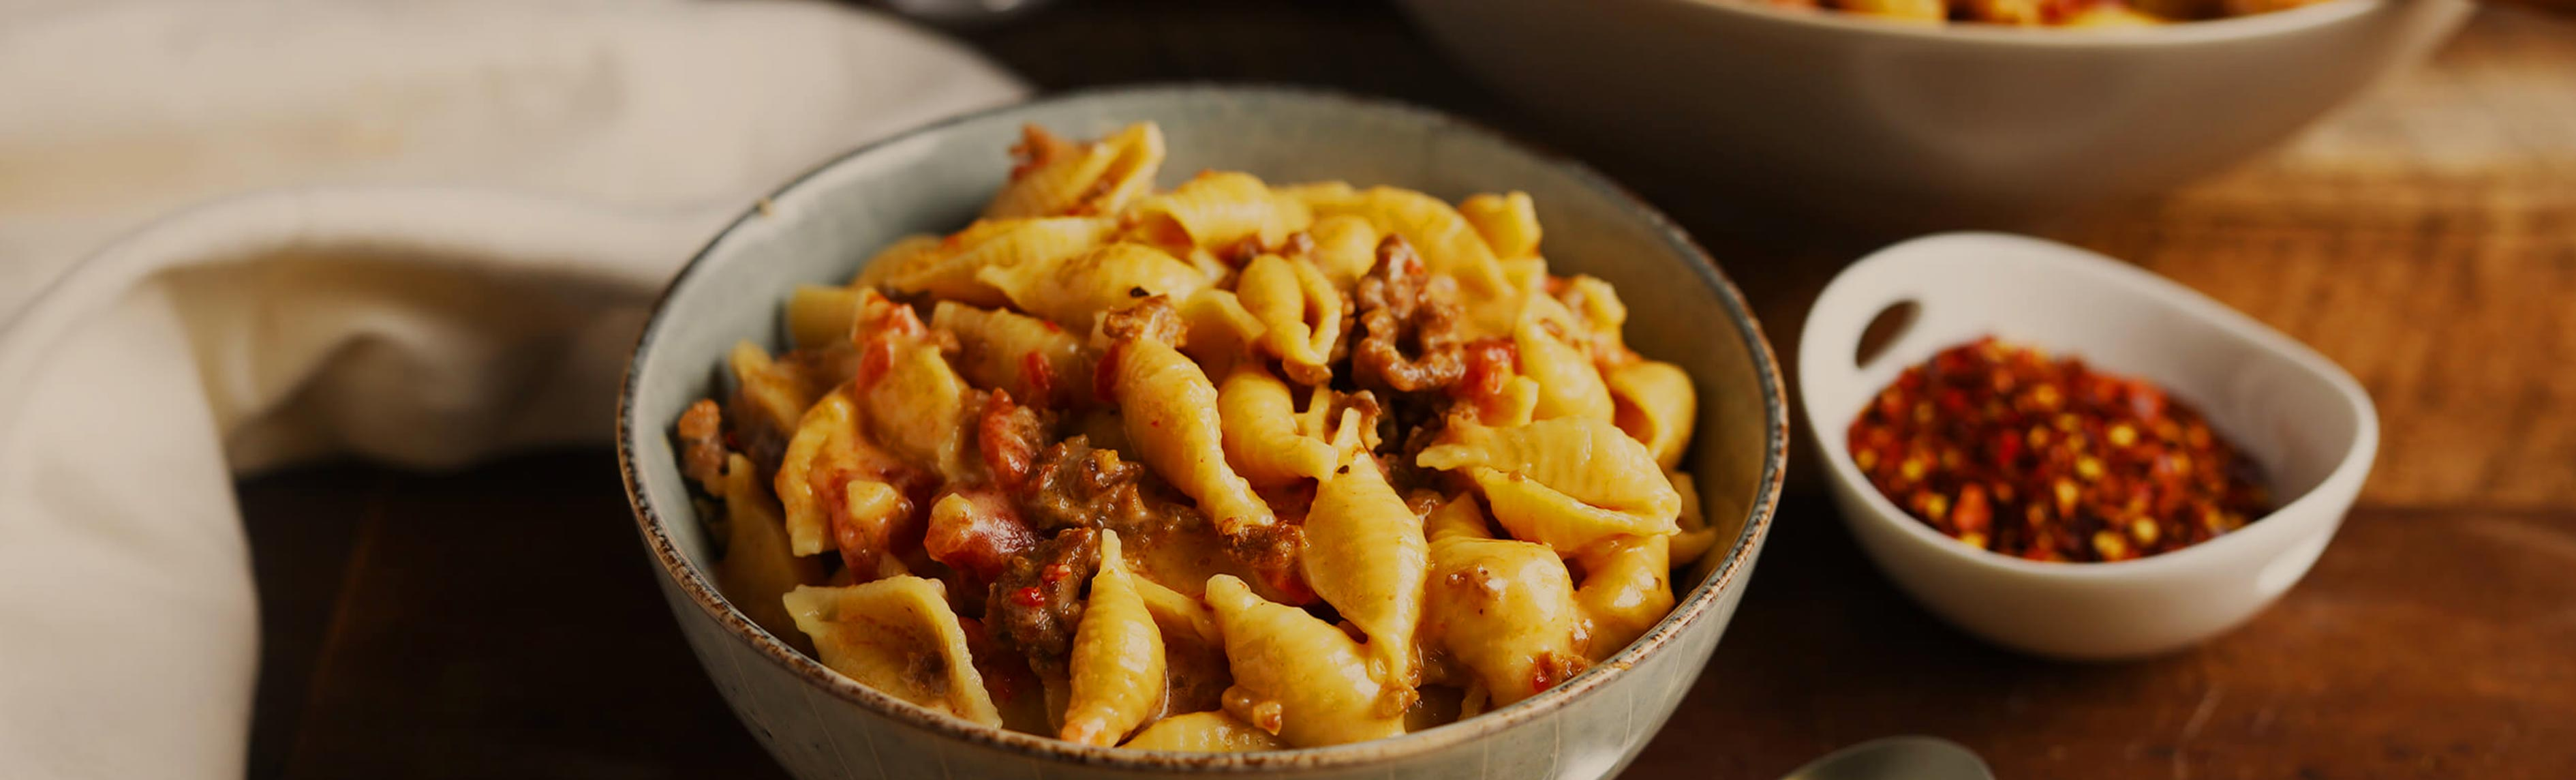 Spicy Italian Sausage Mac and Cheese